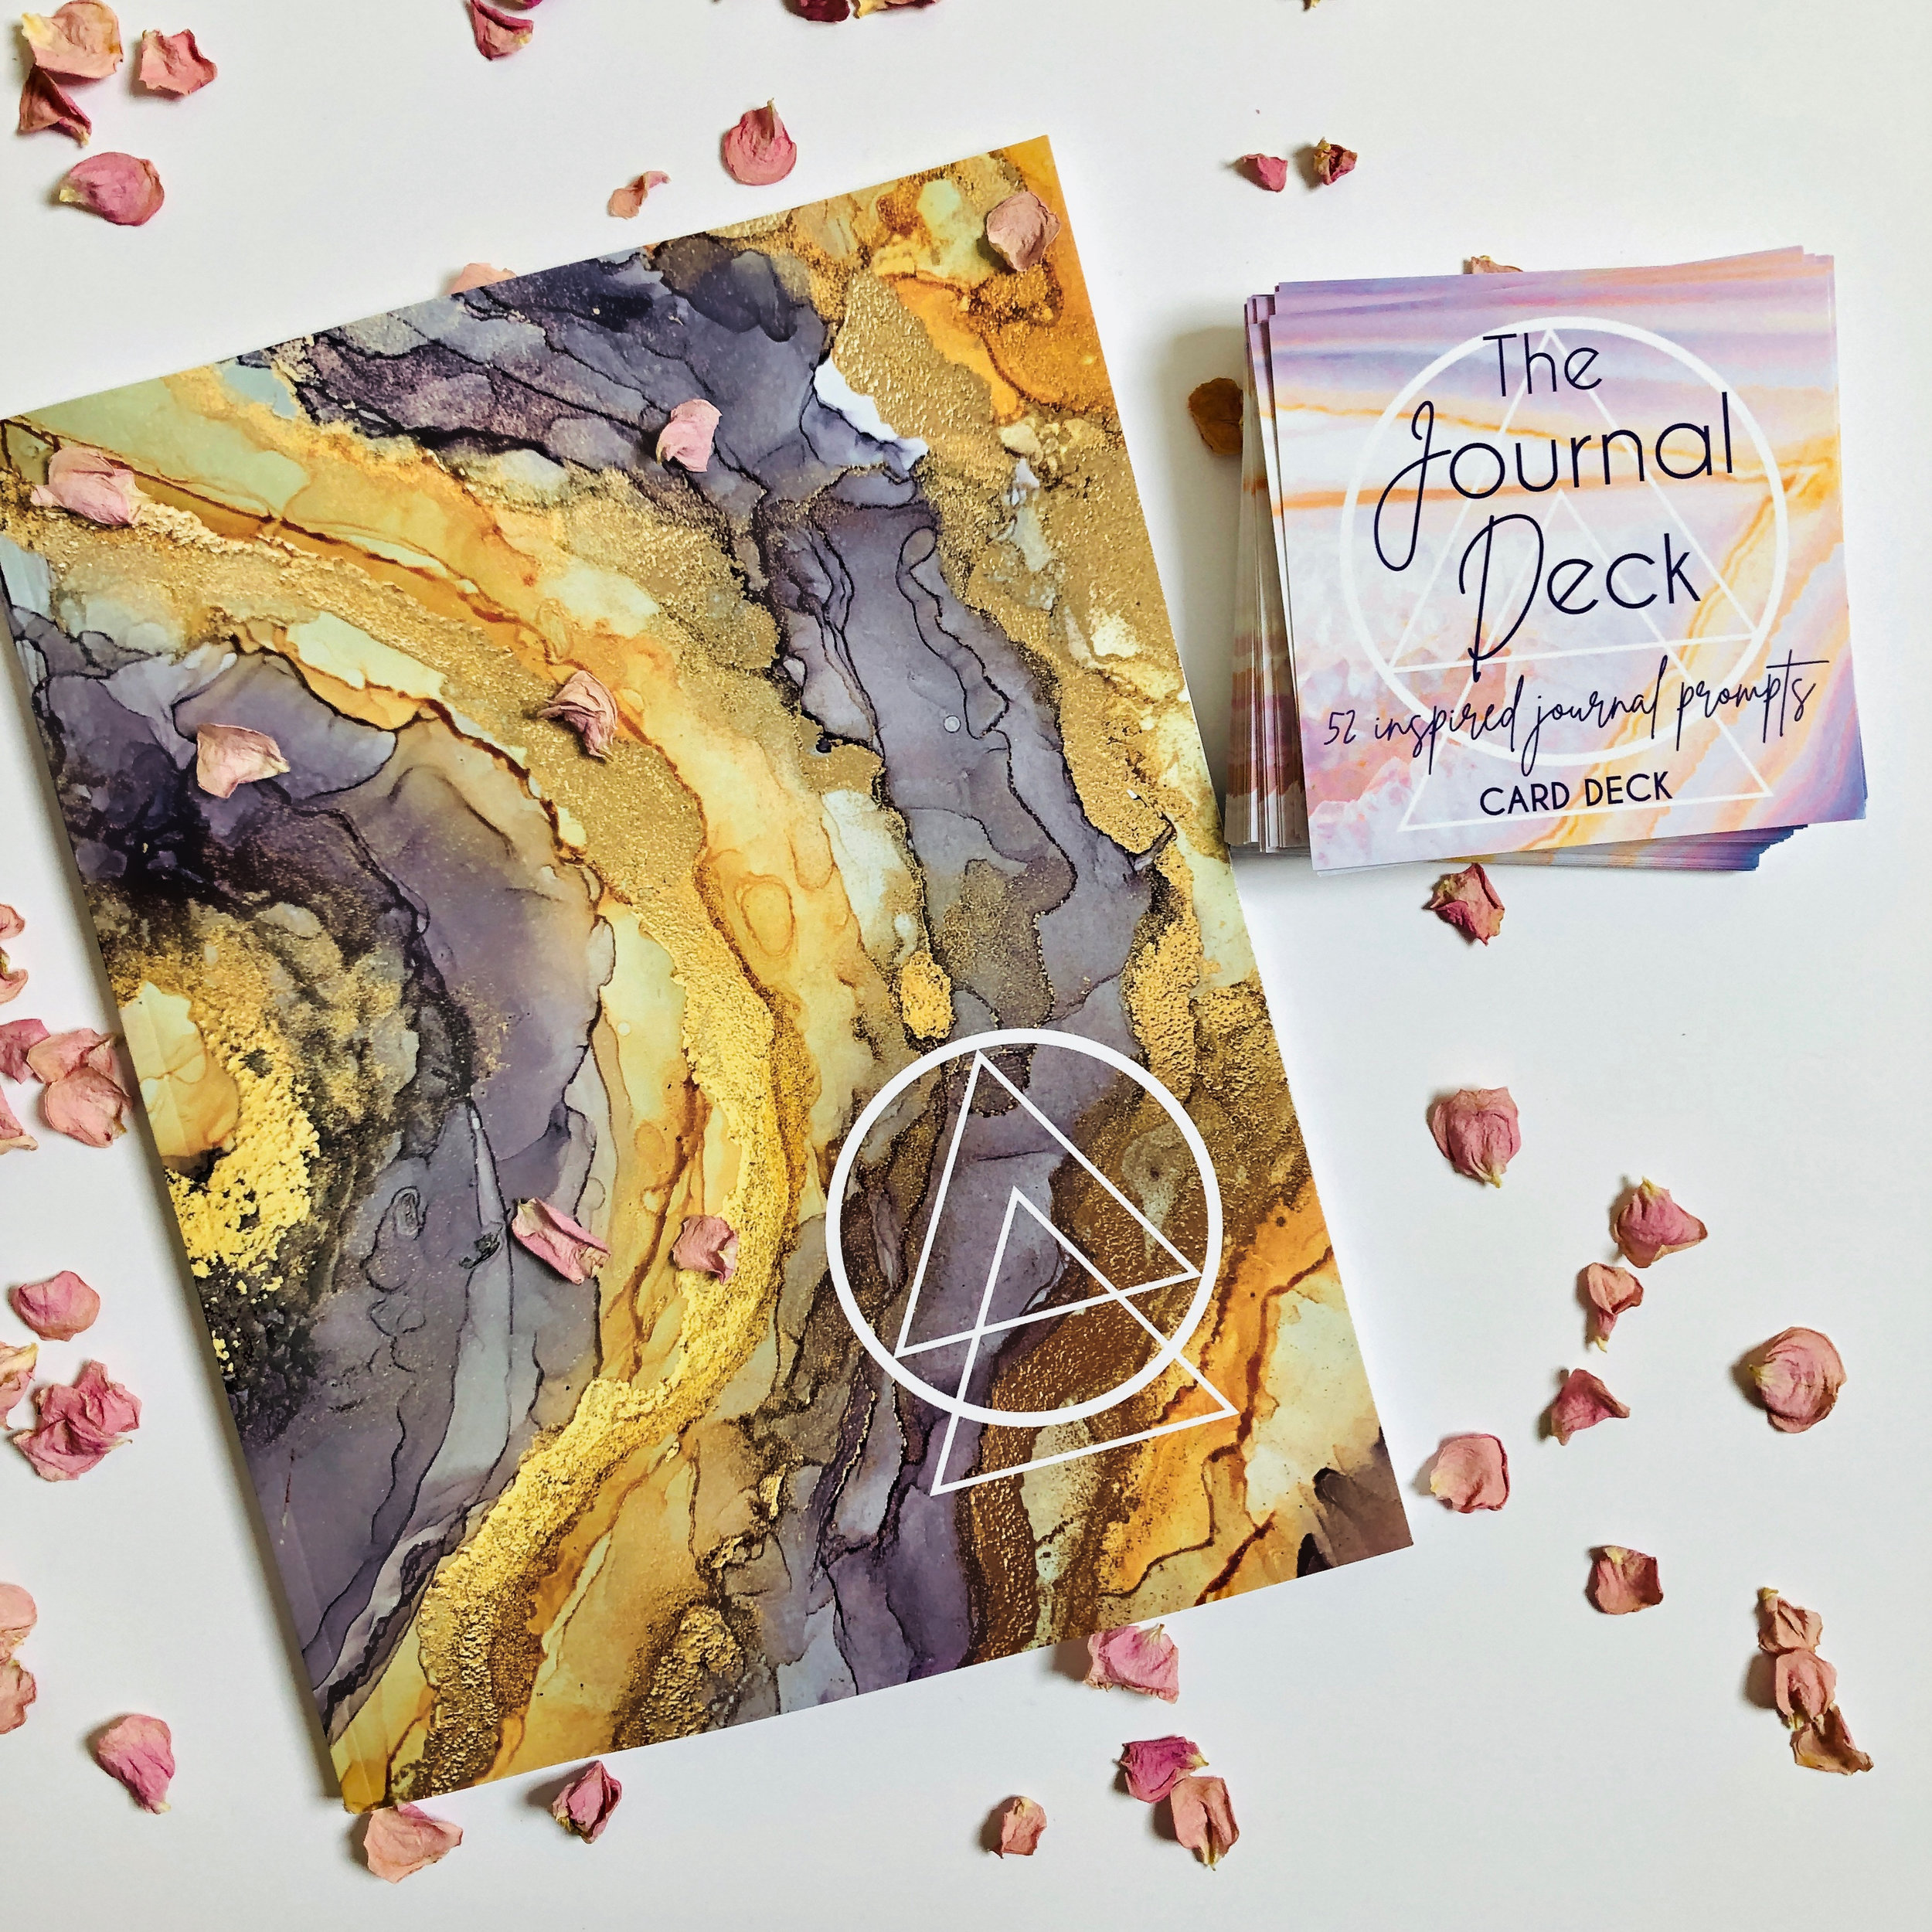 OG Deck + Journal Bundle - $45